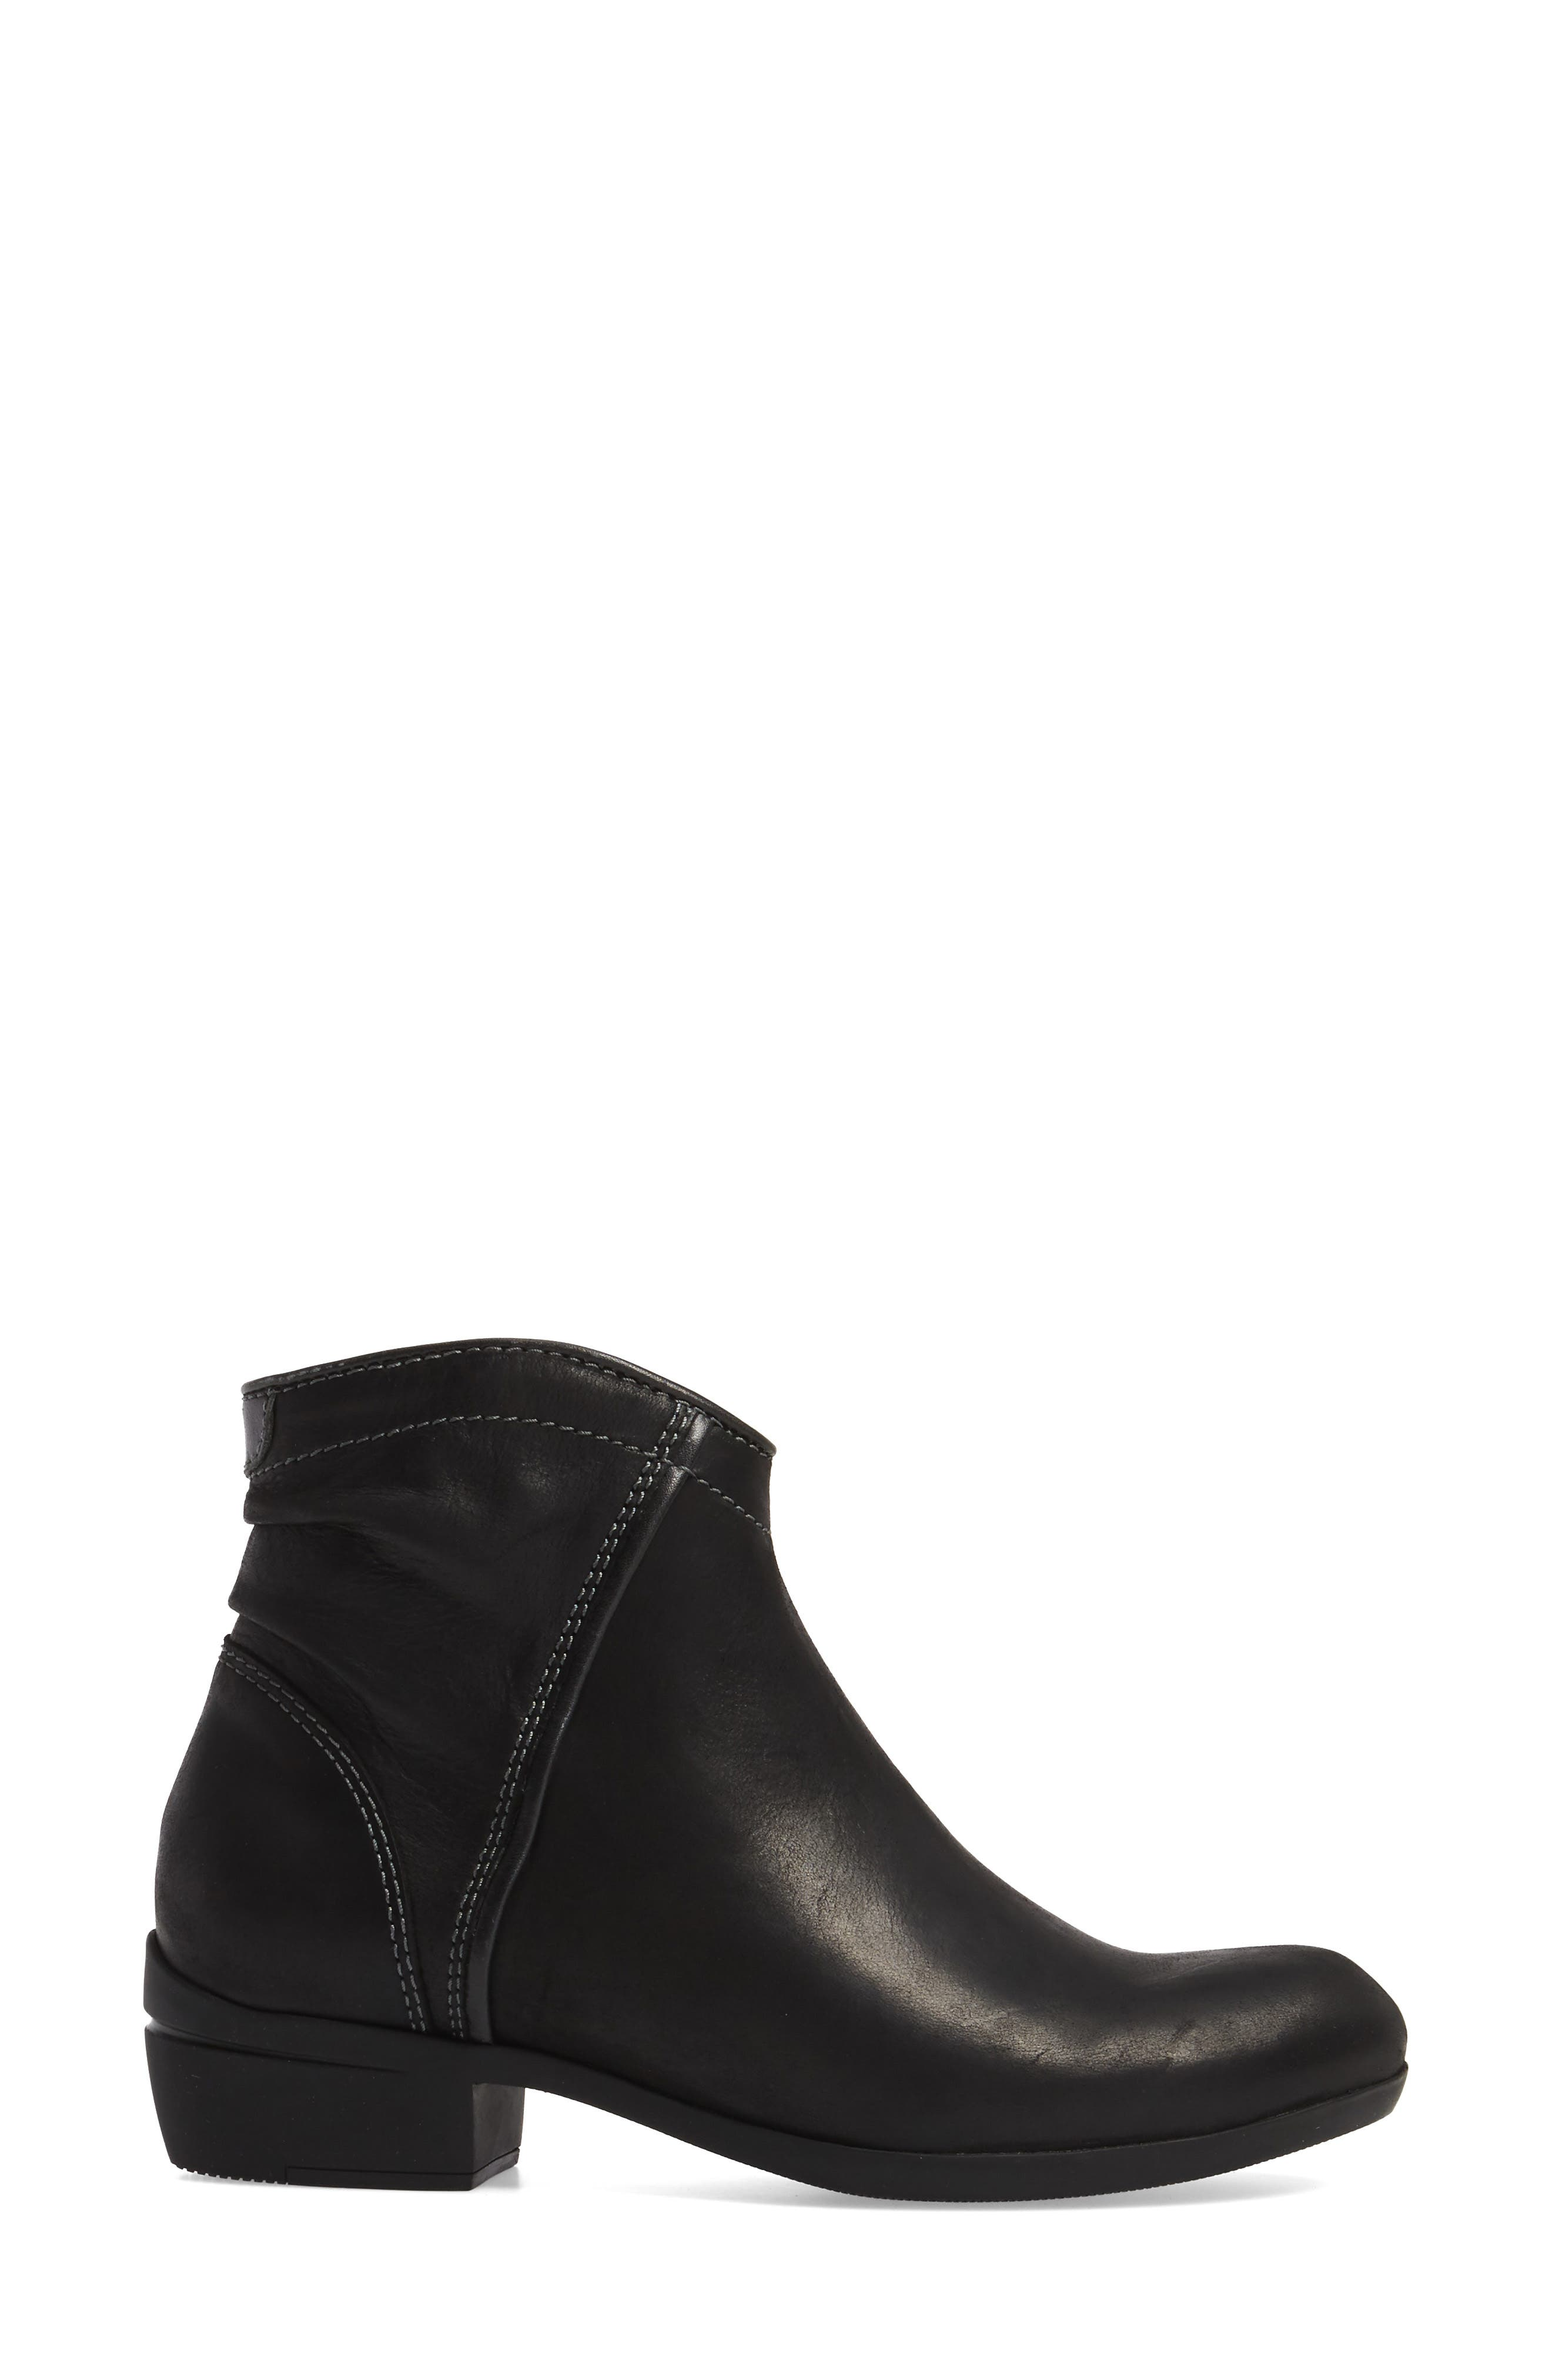 Winchester Bootie,                             Alternate thumbnail 3, color,                             001